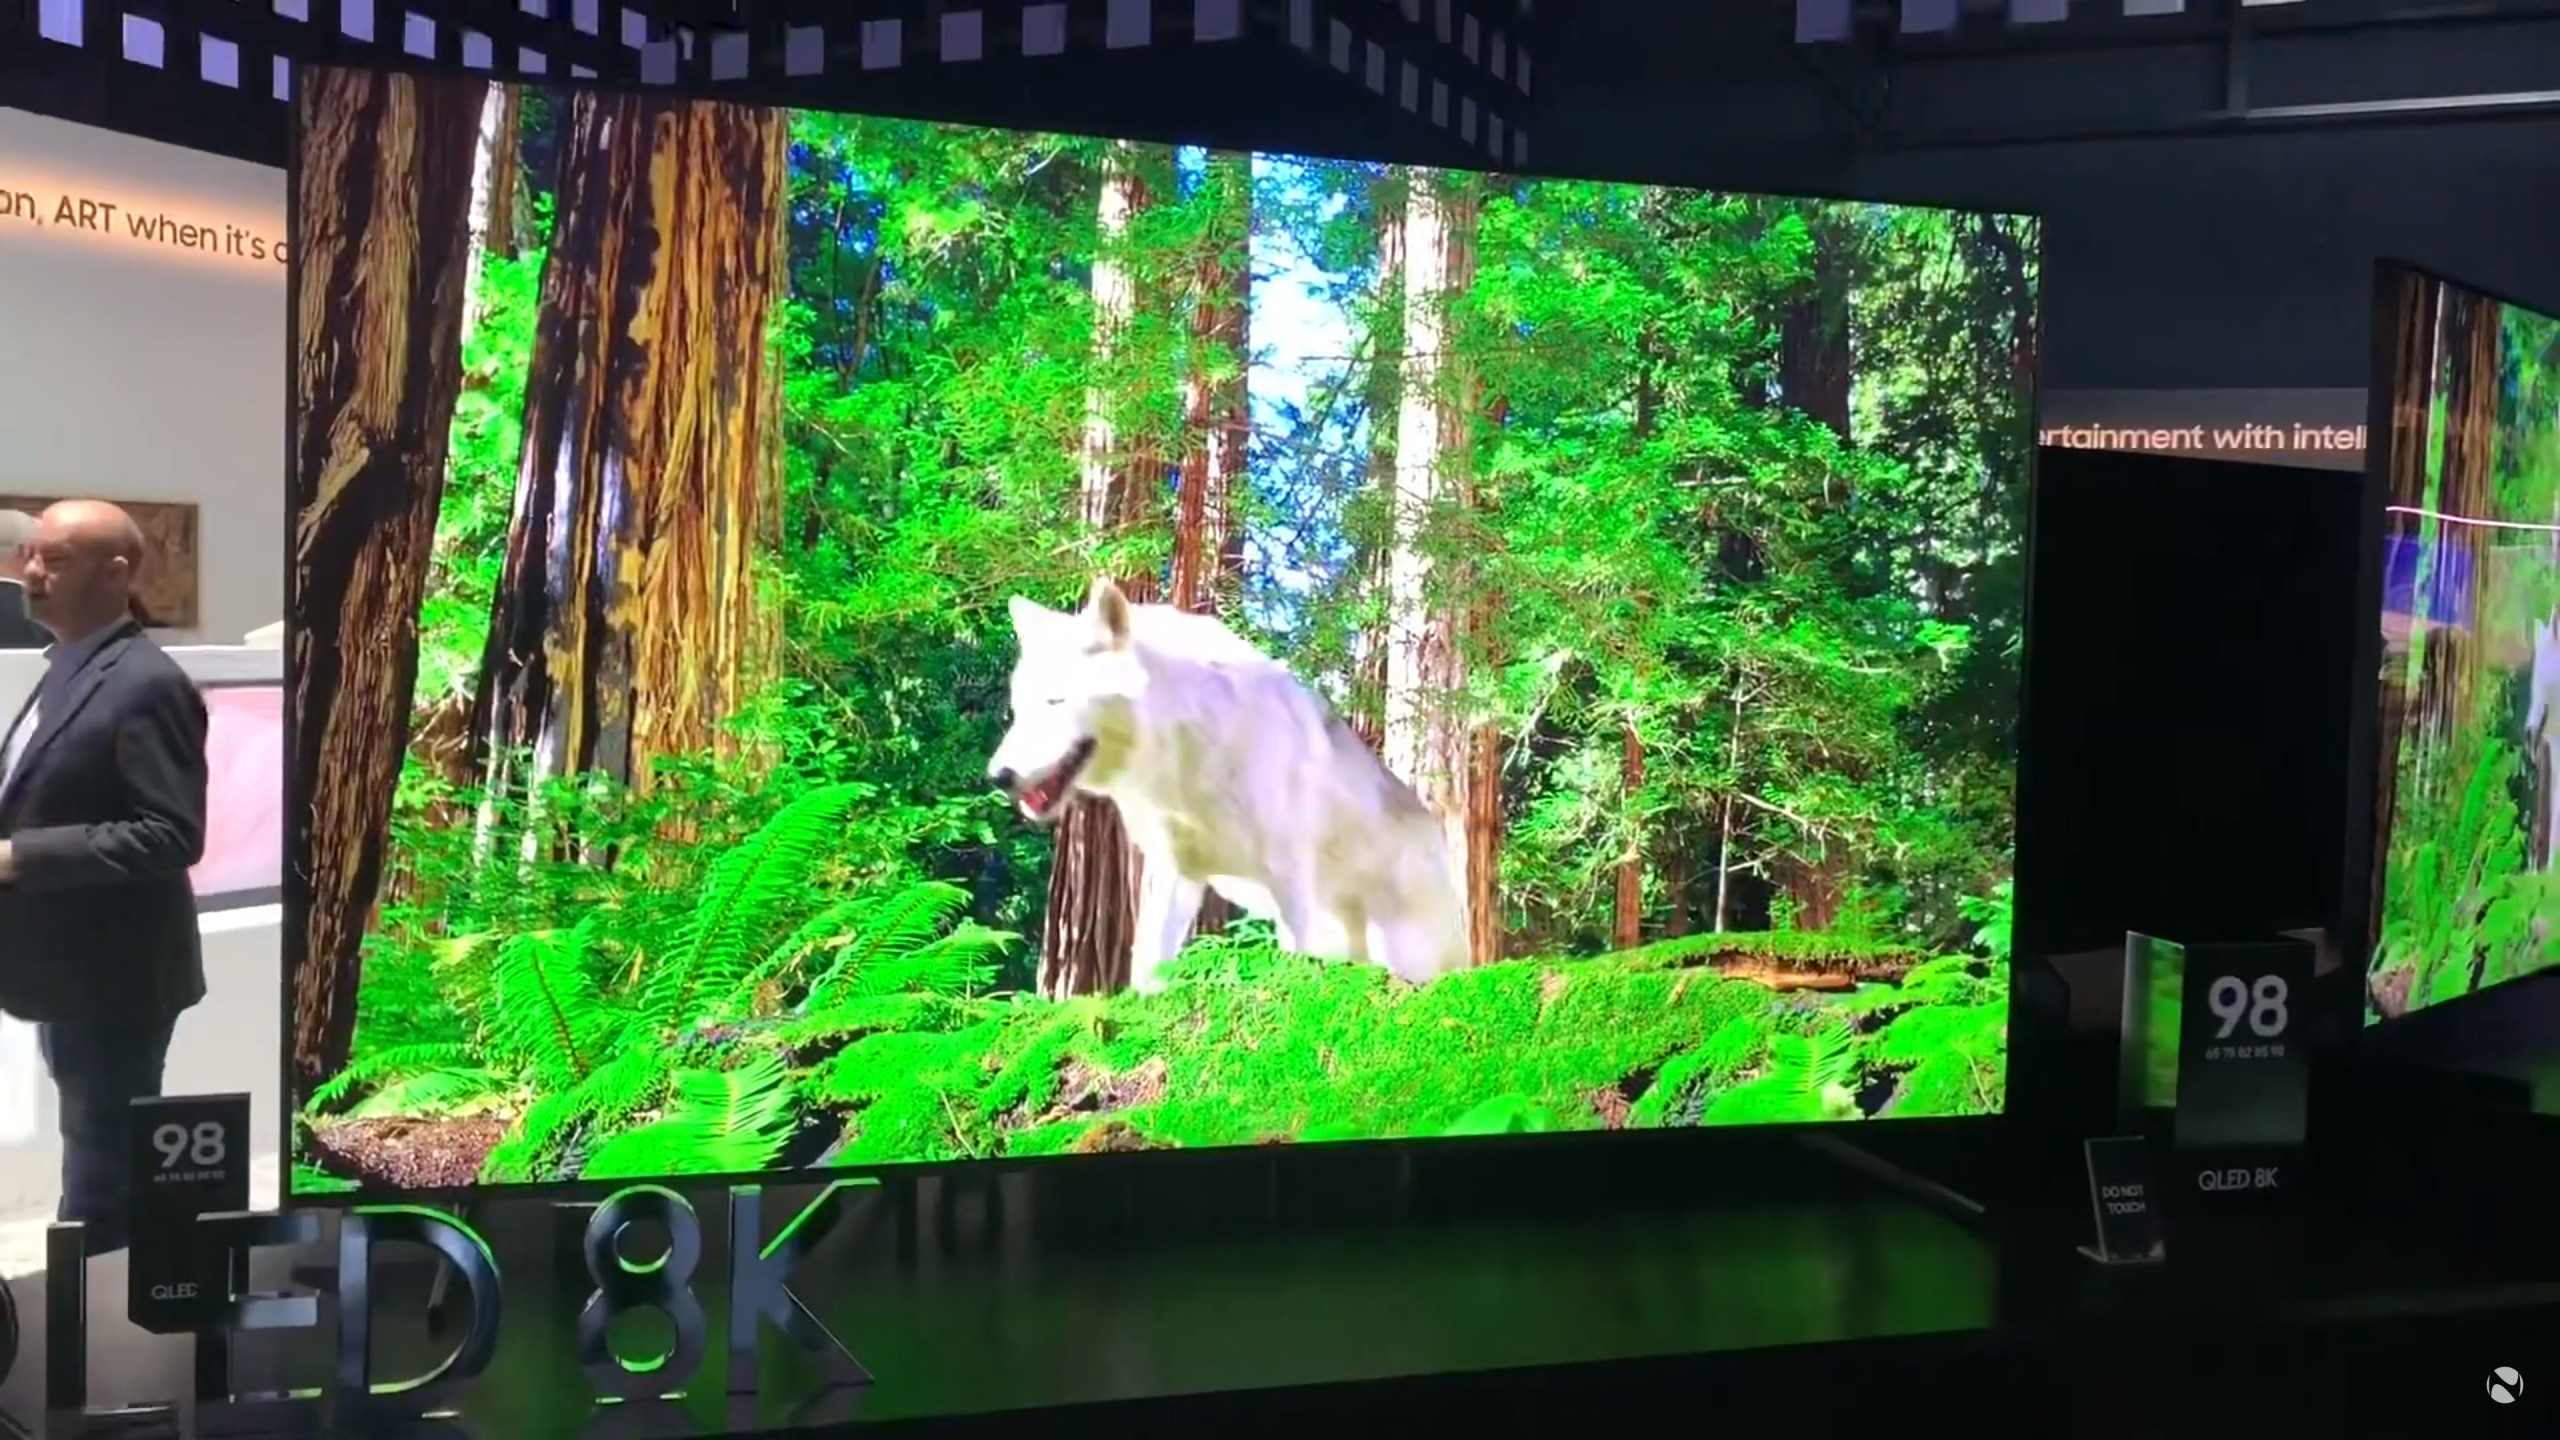 CES 2019: Samsung's booth has 8K QLED TVs, the Wall micro